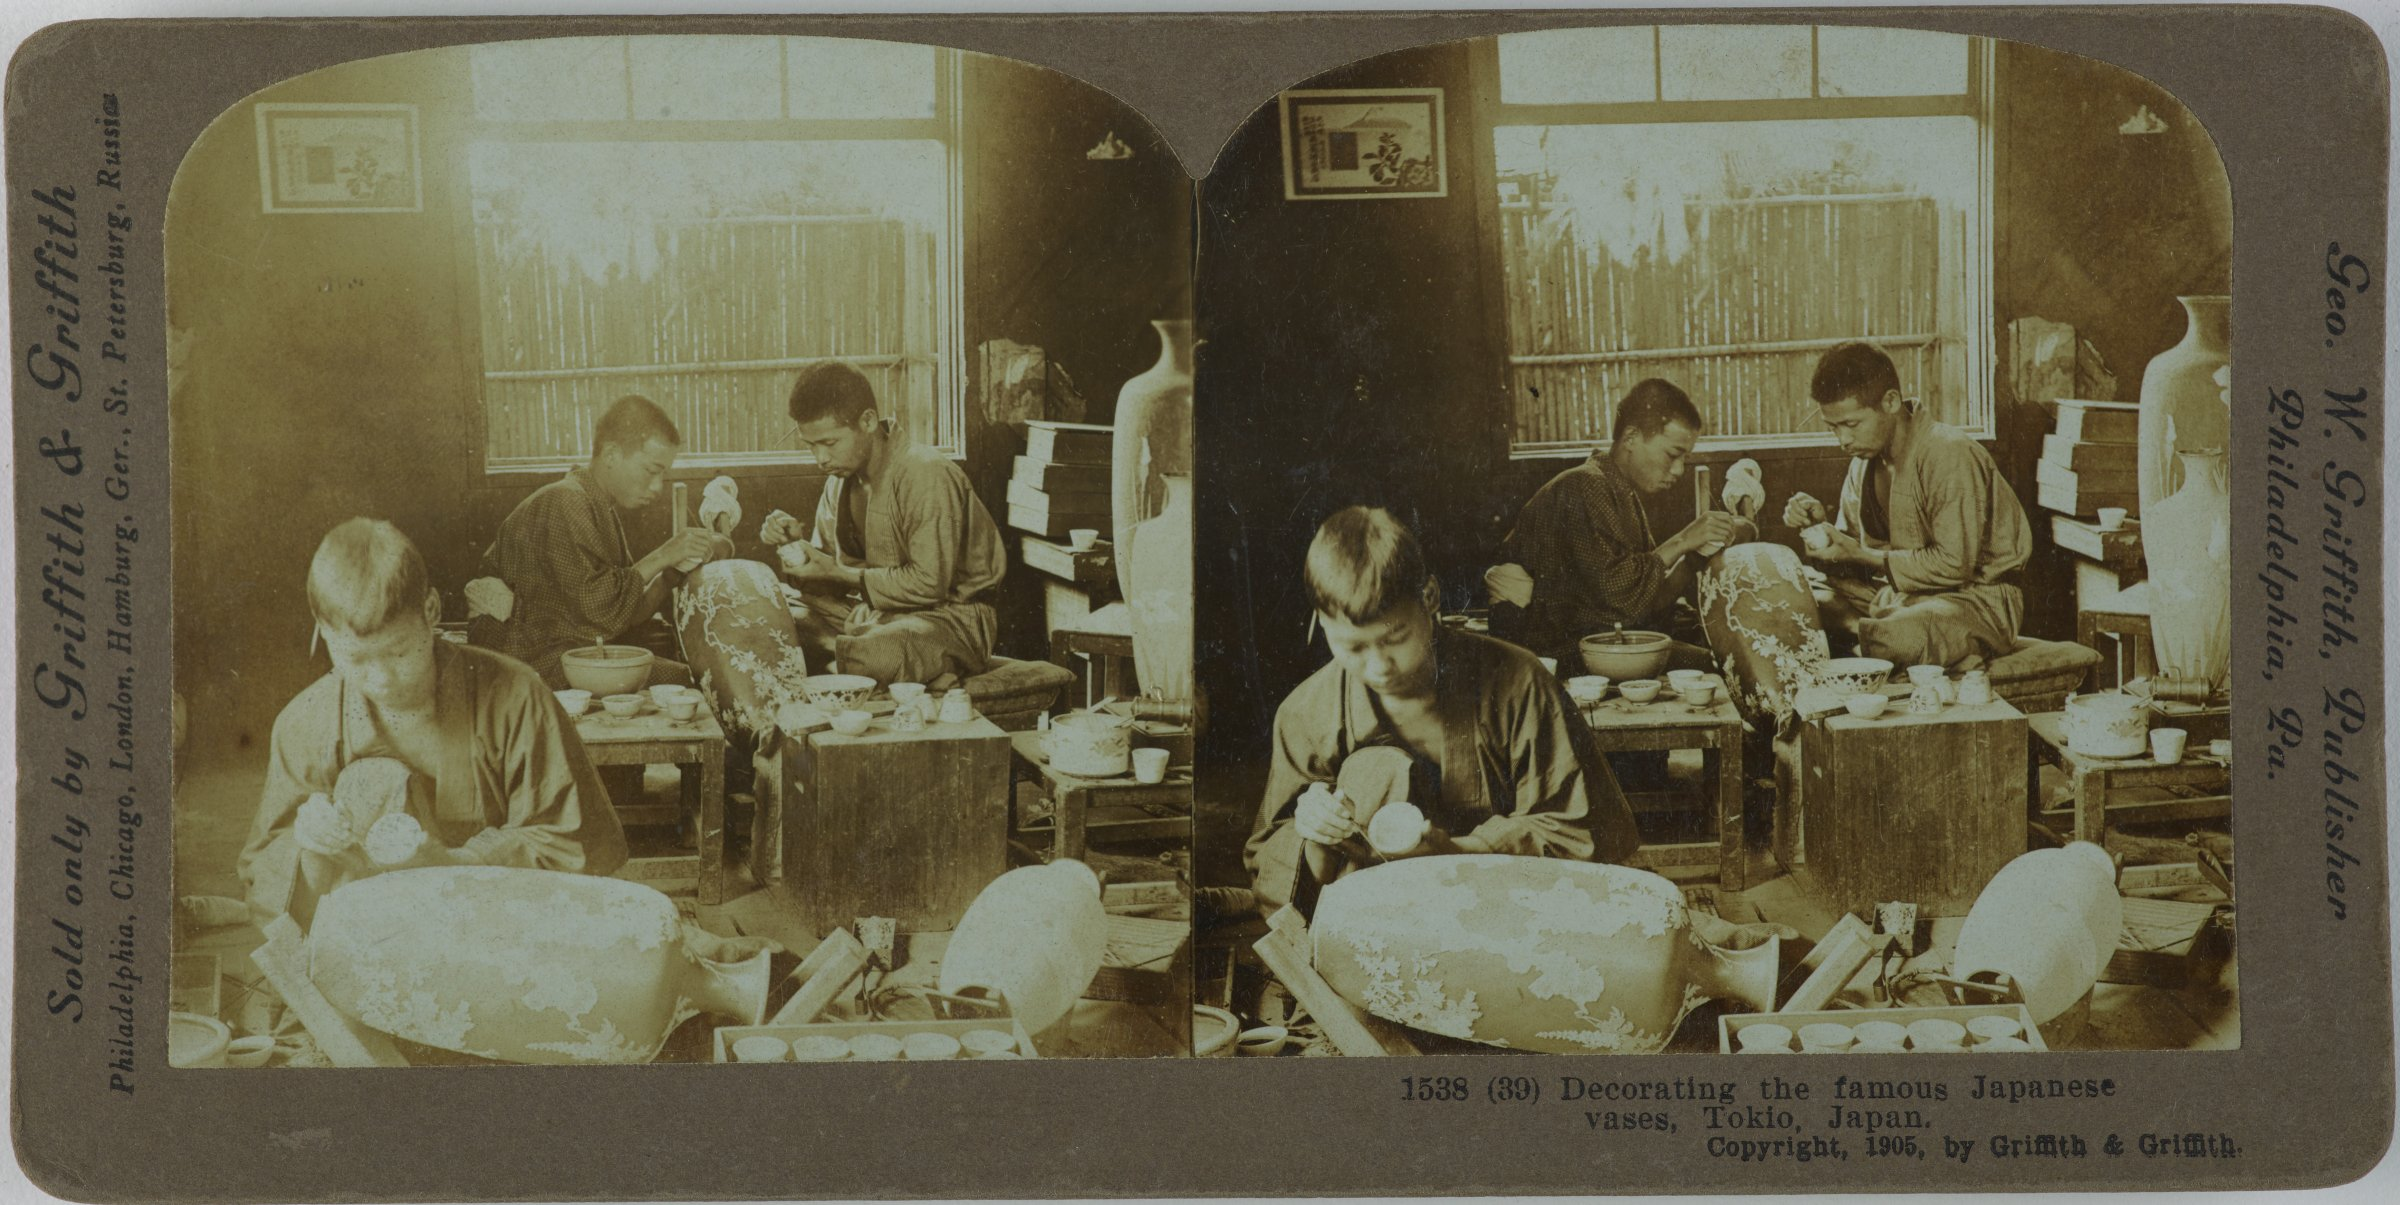 Decorating the famous Japanese vases, Tokio, Japan, Griffith & Griffith, gelatin silver prints mounted on card